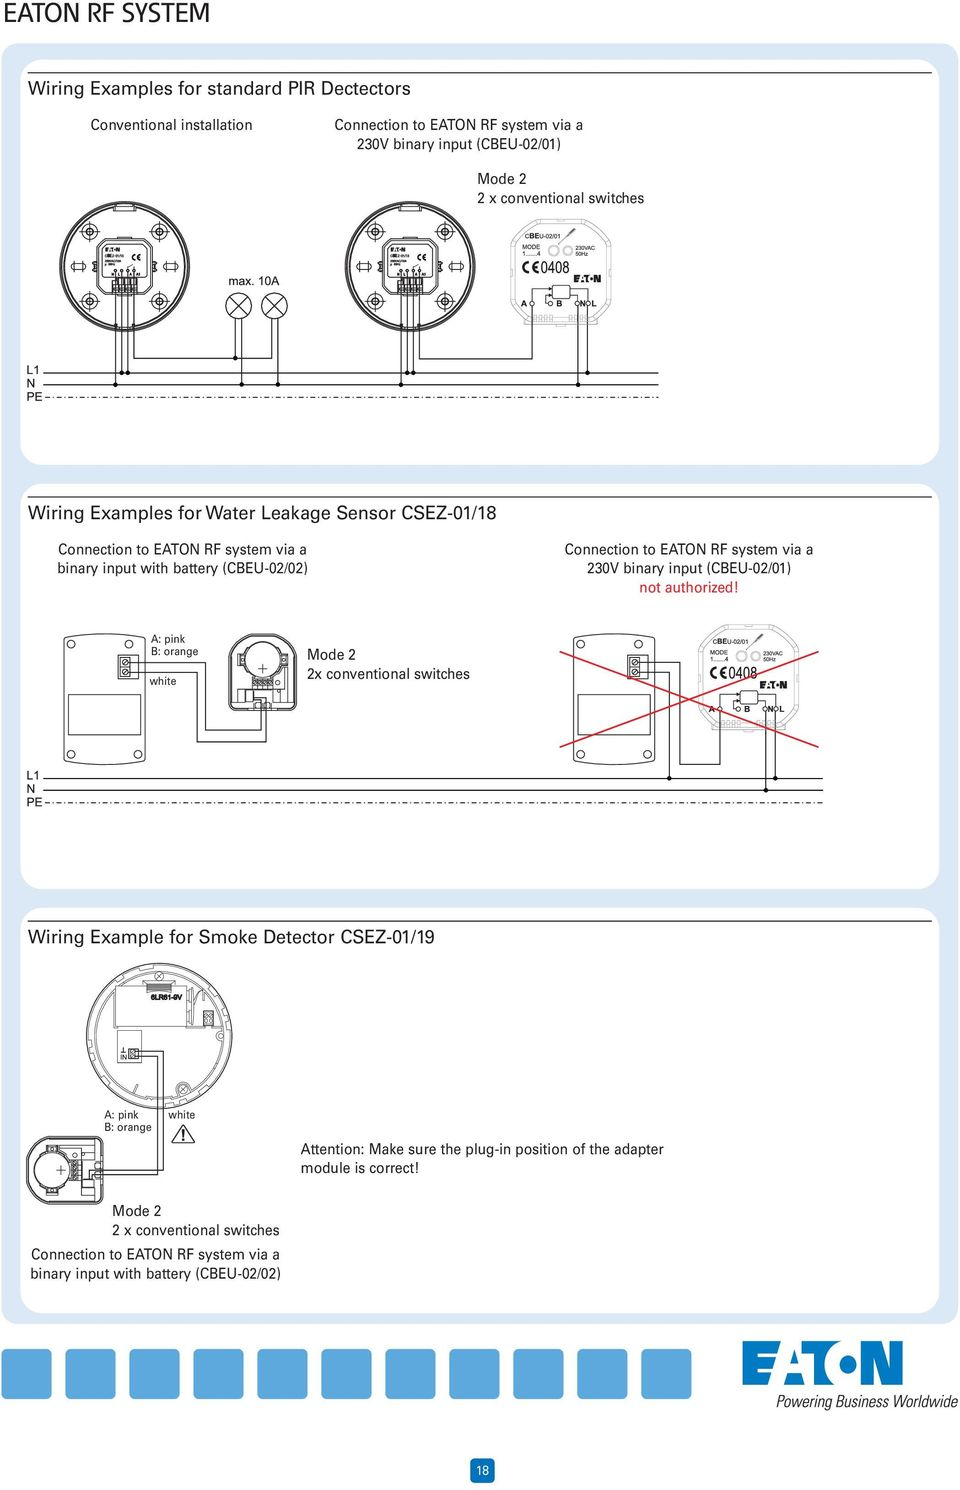 Technical Specifications Eaton Rf System Wiring Examples Page Xx Binary Switch Diagram Input Cbeu 02 01 Not Authorized